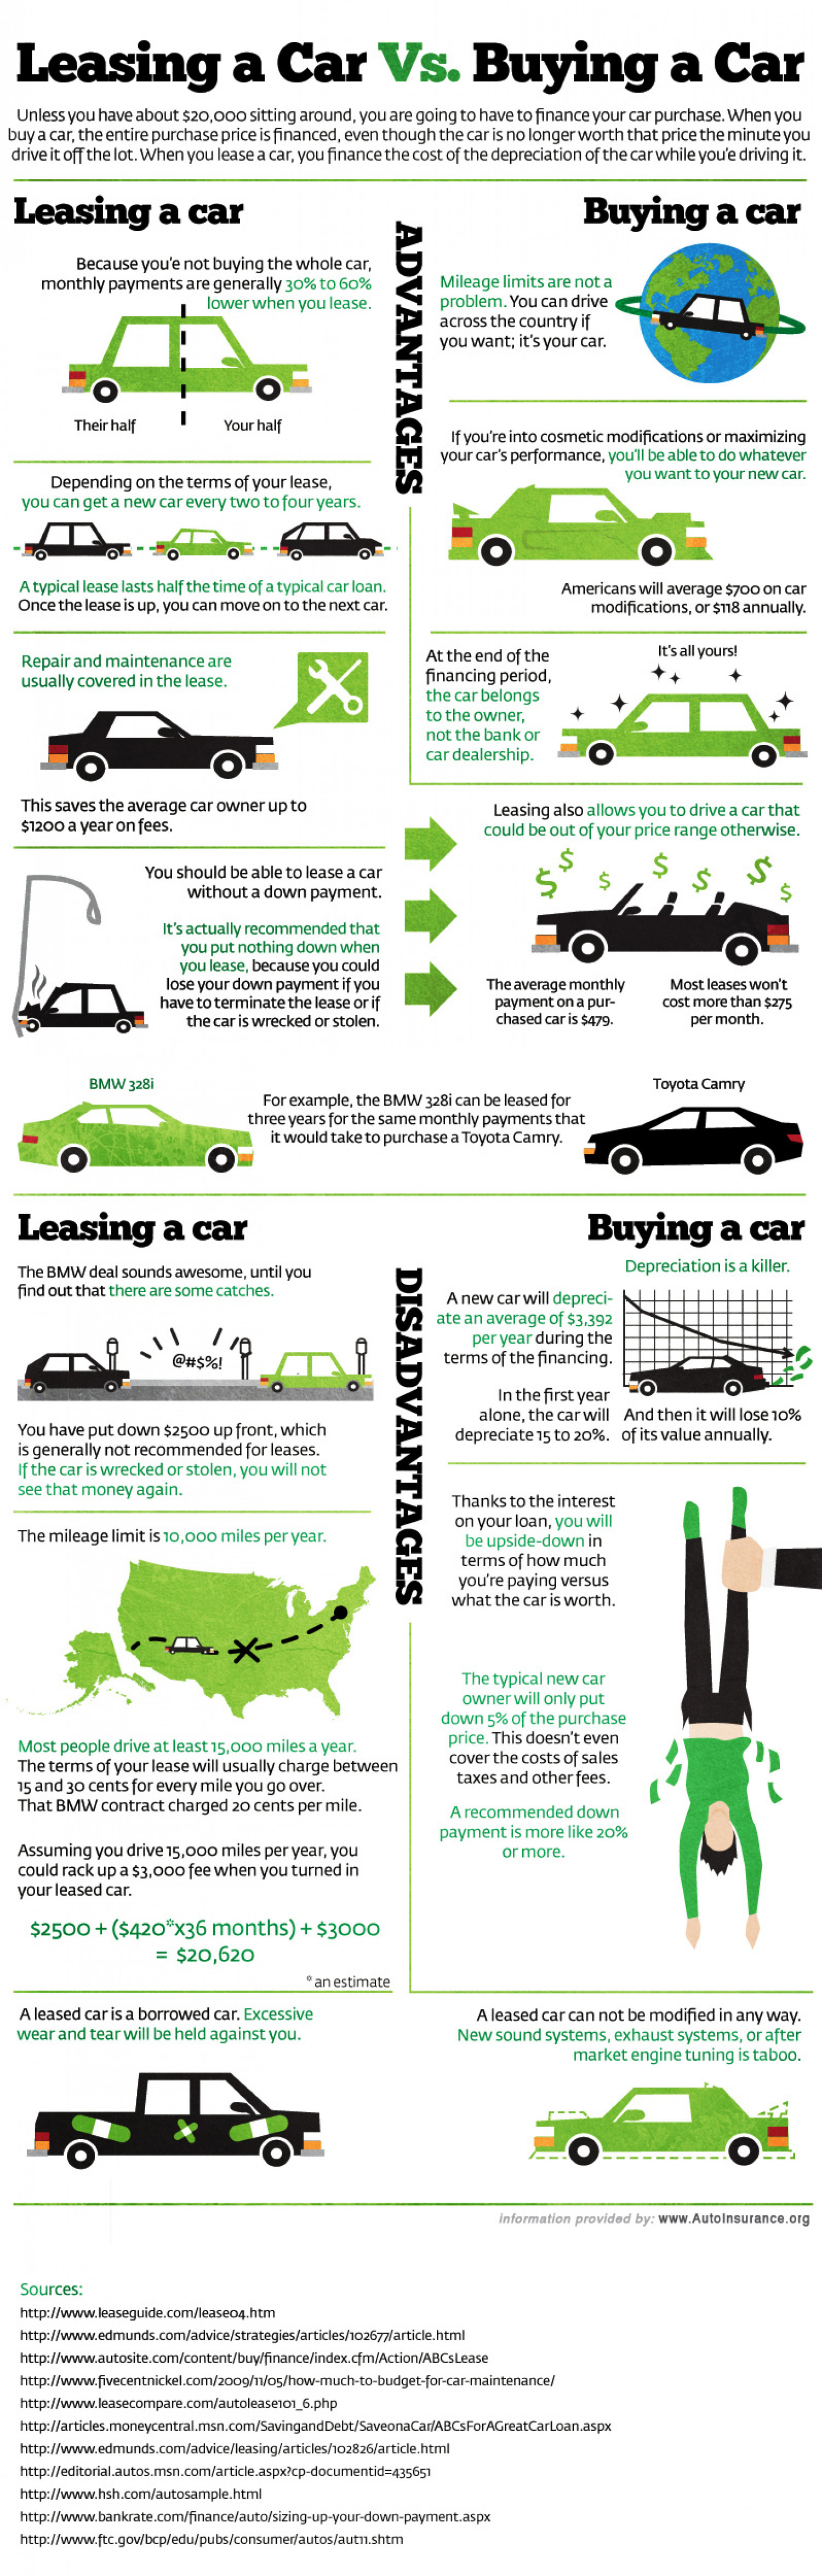 Leasing a Car vs. Buying a Car Infographic